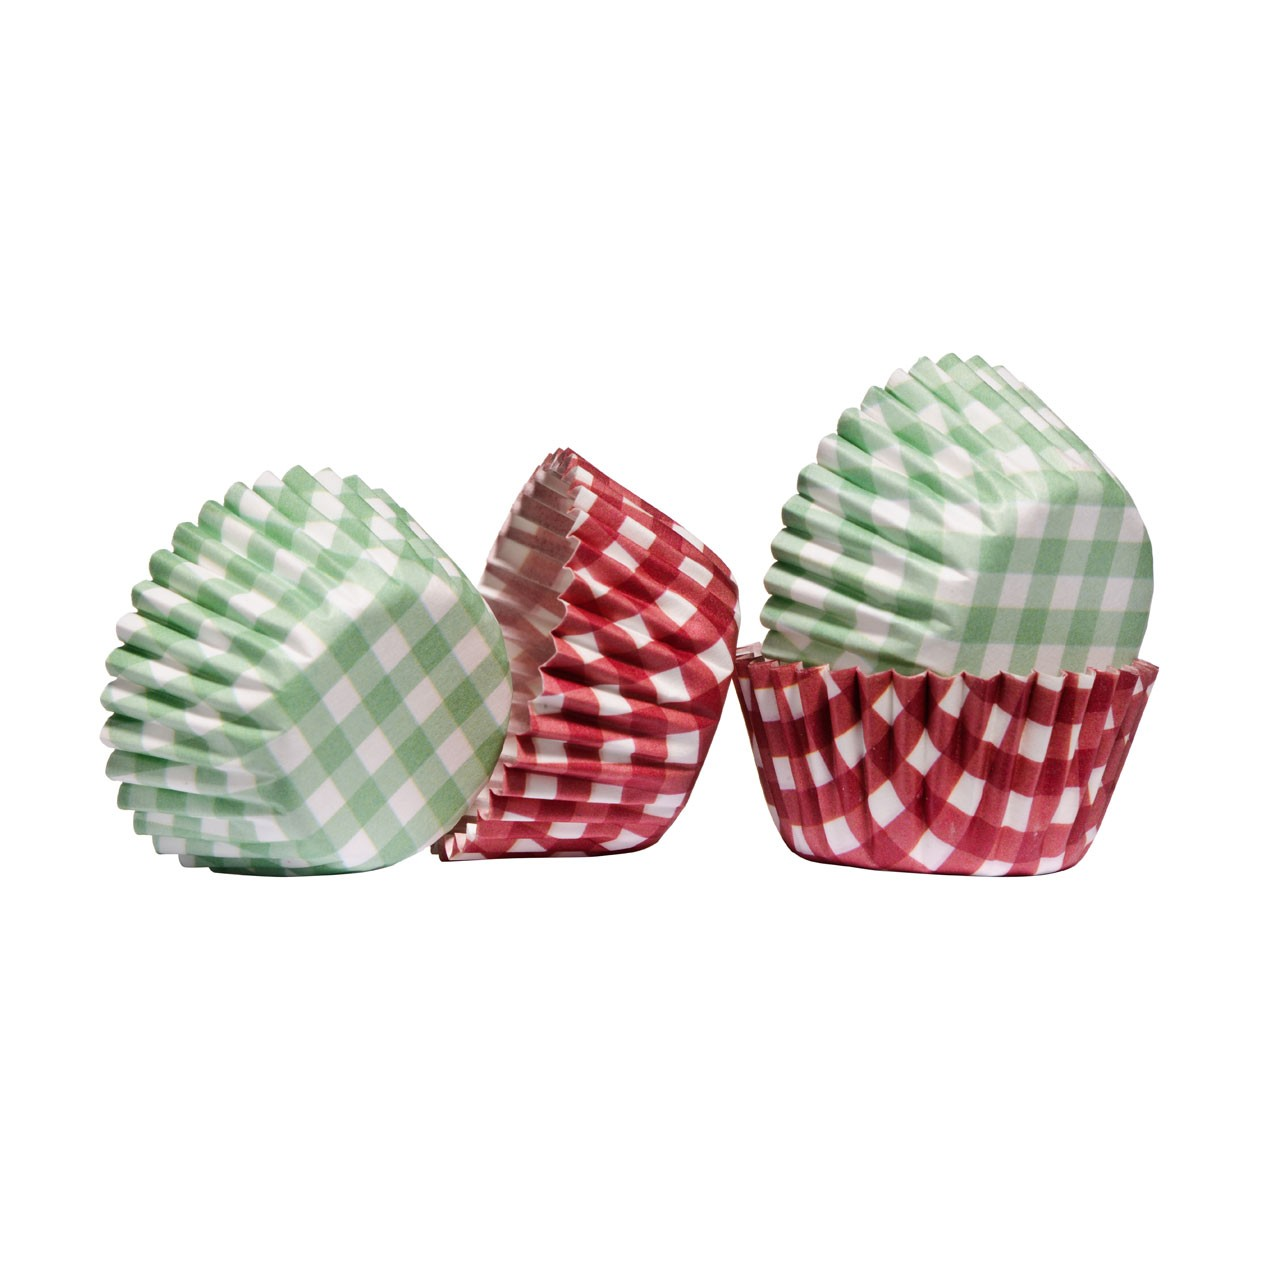 00 Mini Fairy Cupcake Cases Gingham Baking Greaseproof Paper